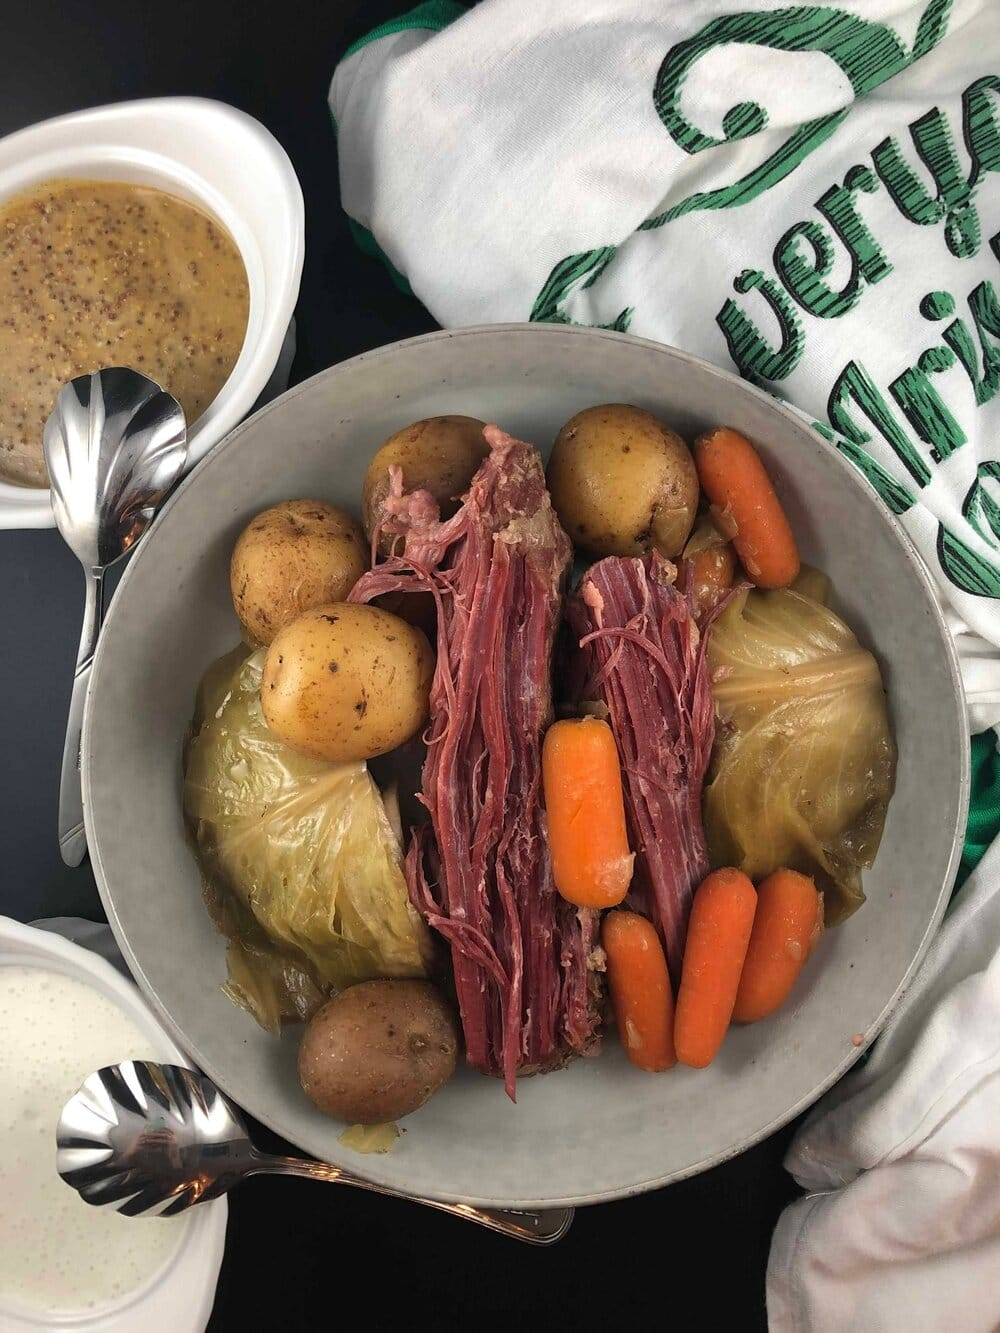 This corned beef is so good and so easy. Just throw everything into the crockpot and 10 hours later you have perfectly cooked corned beef and vegetables. This beef and vegetables is cooked in a Guiness broth and served with a dill pickle horseradish cream and a stone ground guiness mustard. Missouri Girl. Missouri Girl Blog.